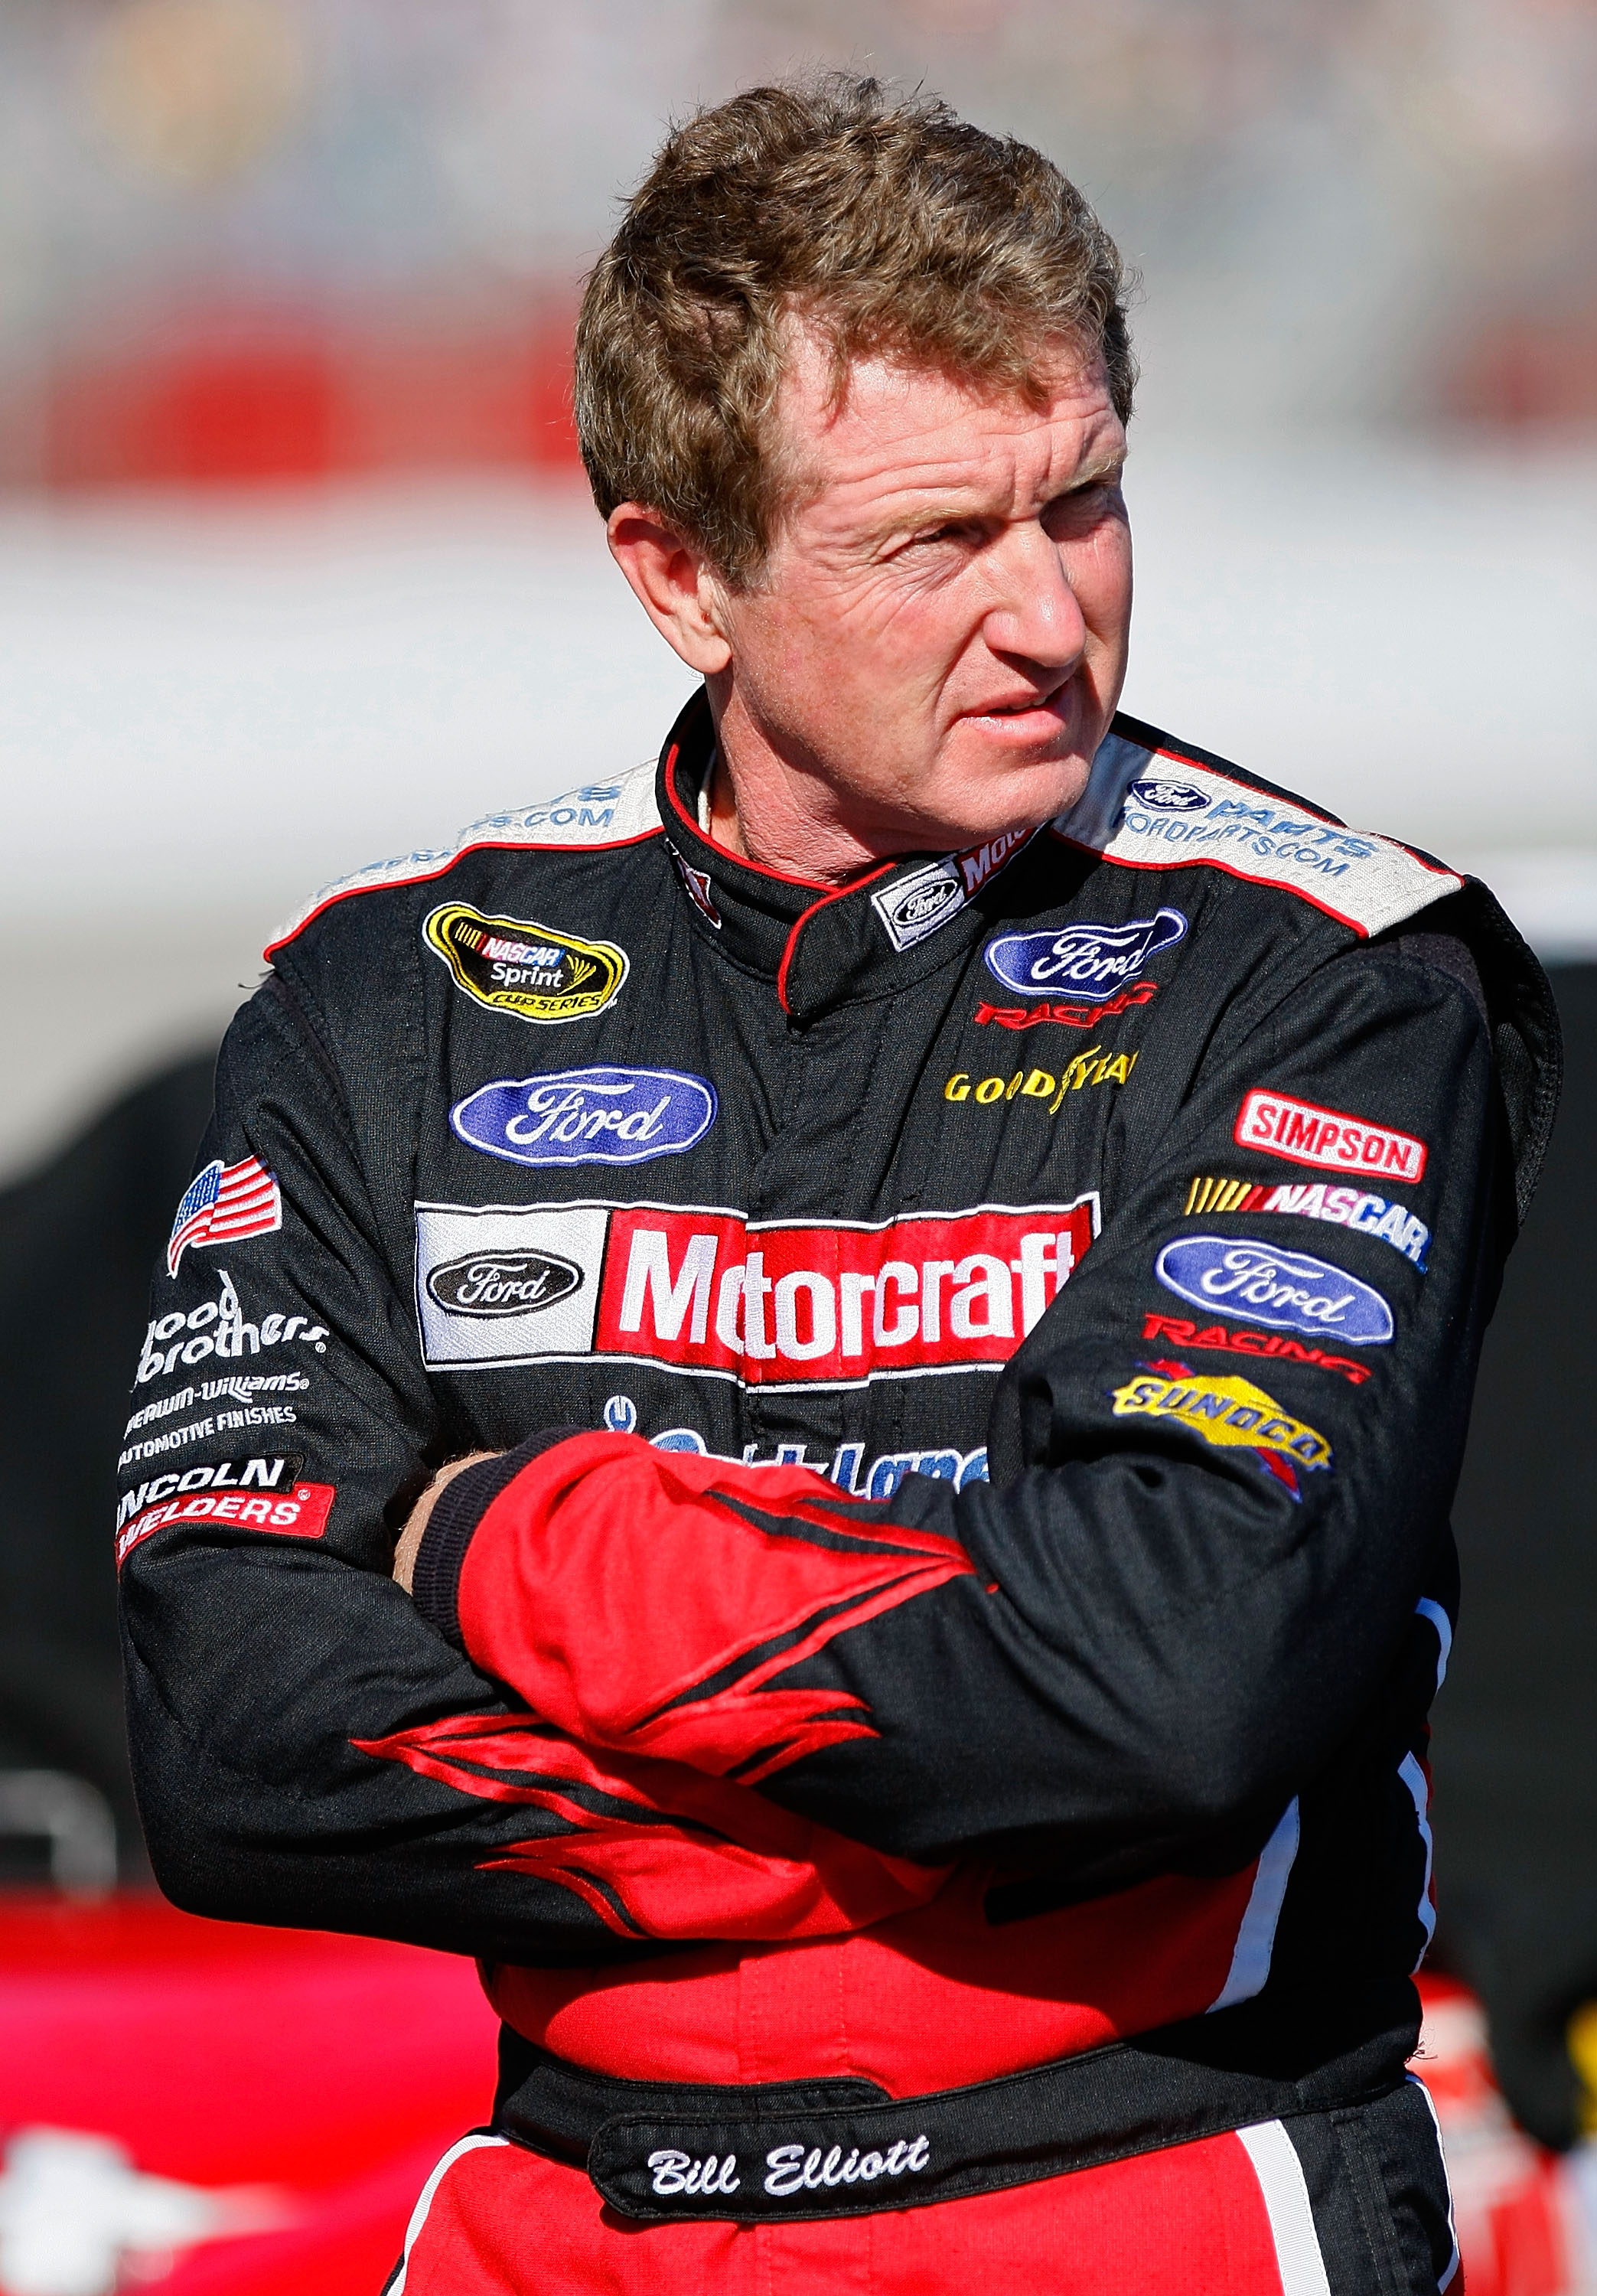 HAMPTON, GA - SEPTEMBER 04: Bill Elliott, driver of the #21 FordParts.com Ford, stands on the grid during qualifying for the NASCAR Sprint Cup Series Emory Healthcare 500 at Atlanta Motor Speedway on September 4, 2010 in Hampton, Georgia.  (Photo by Geoff